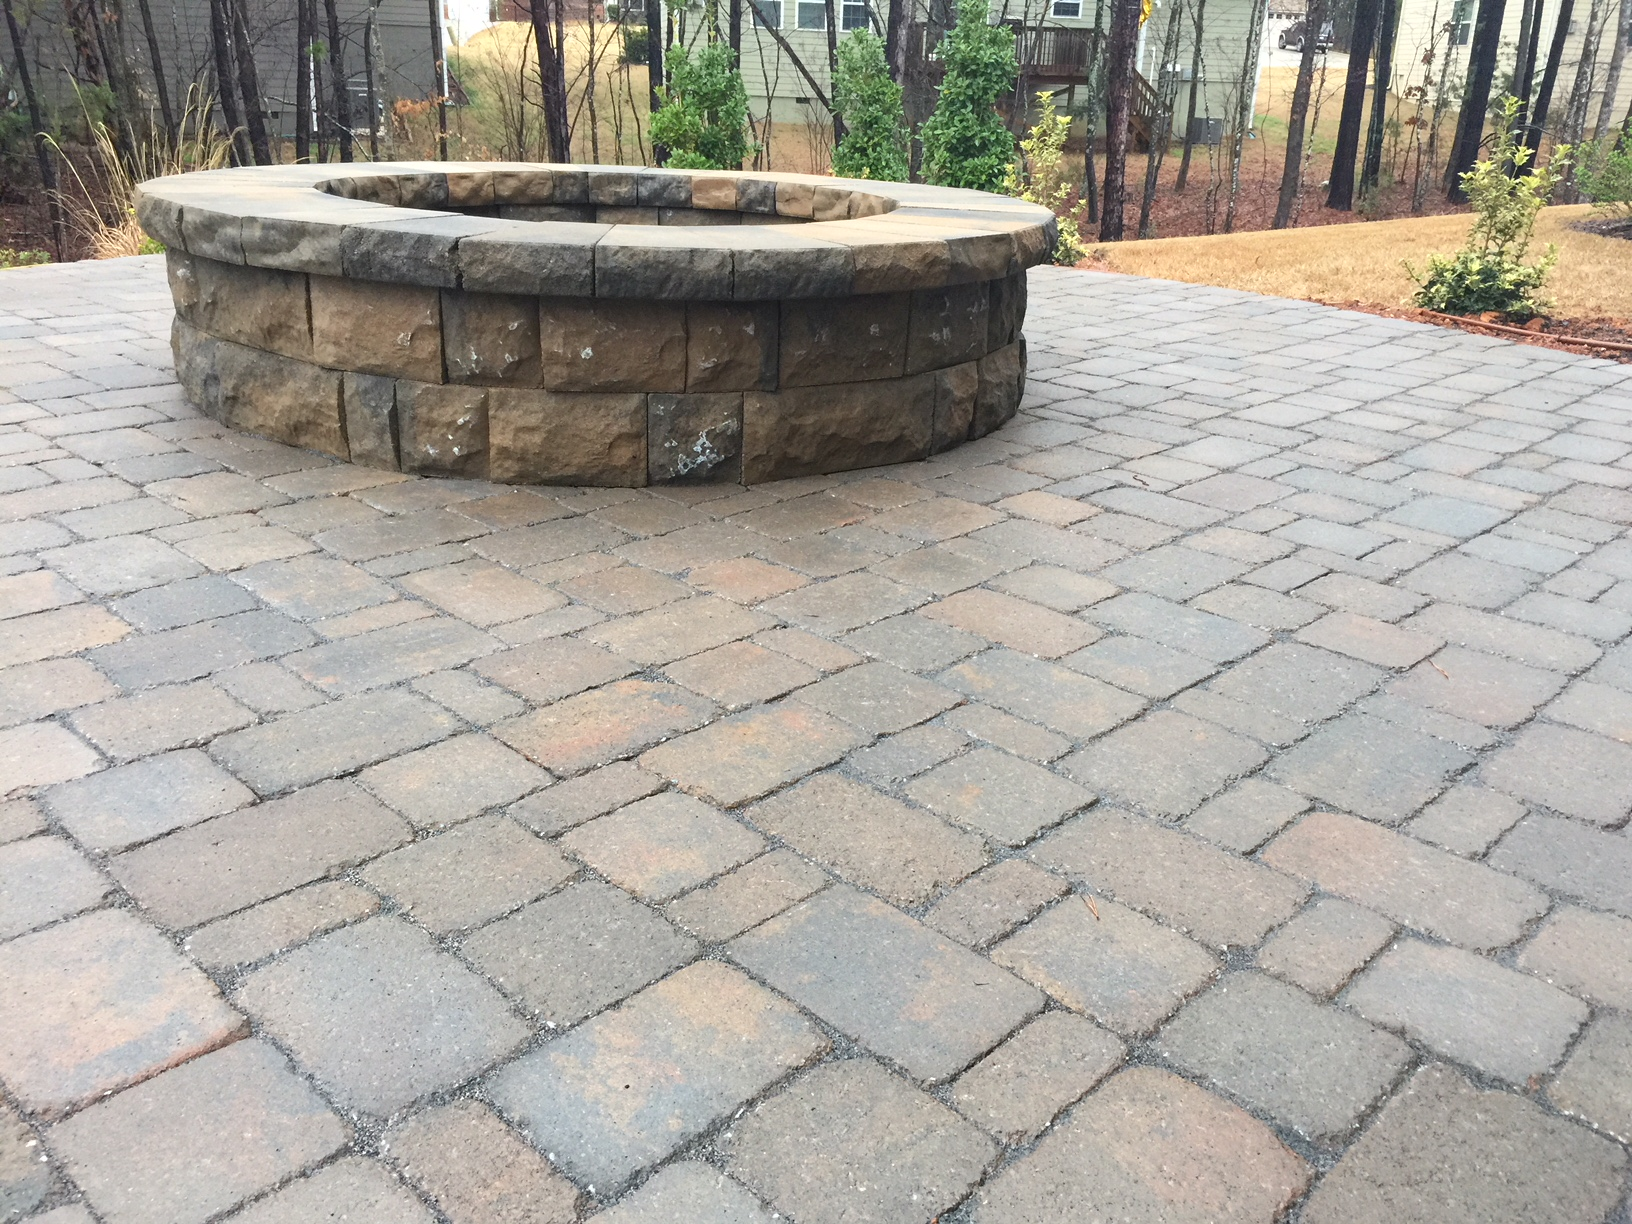 A Belgard Paver Patio, Fire Pit and Landscaping - Mr ... on Pavers Patio With Fire Pit id=74015